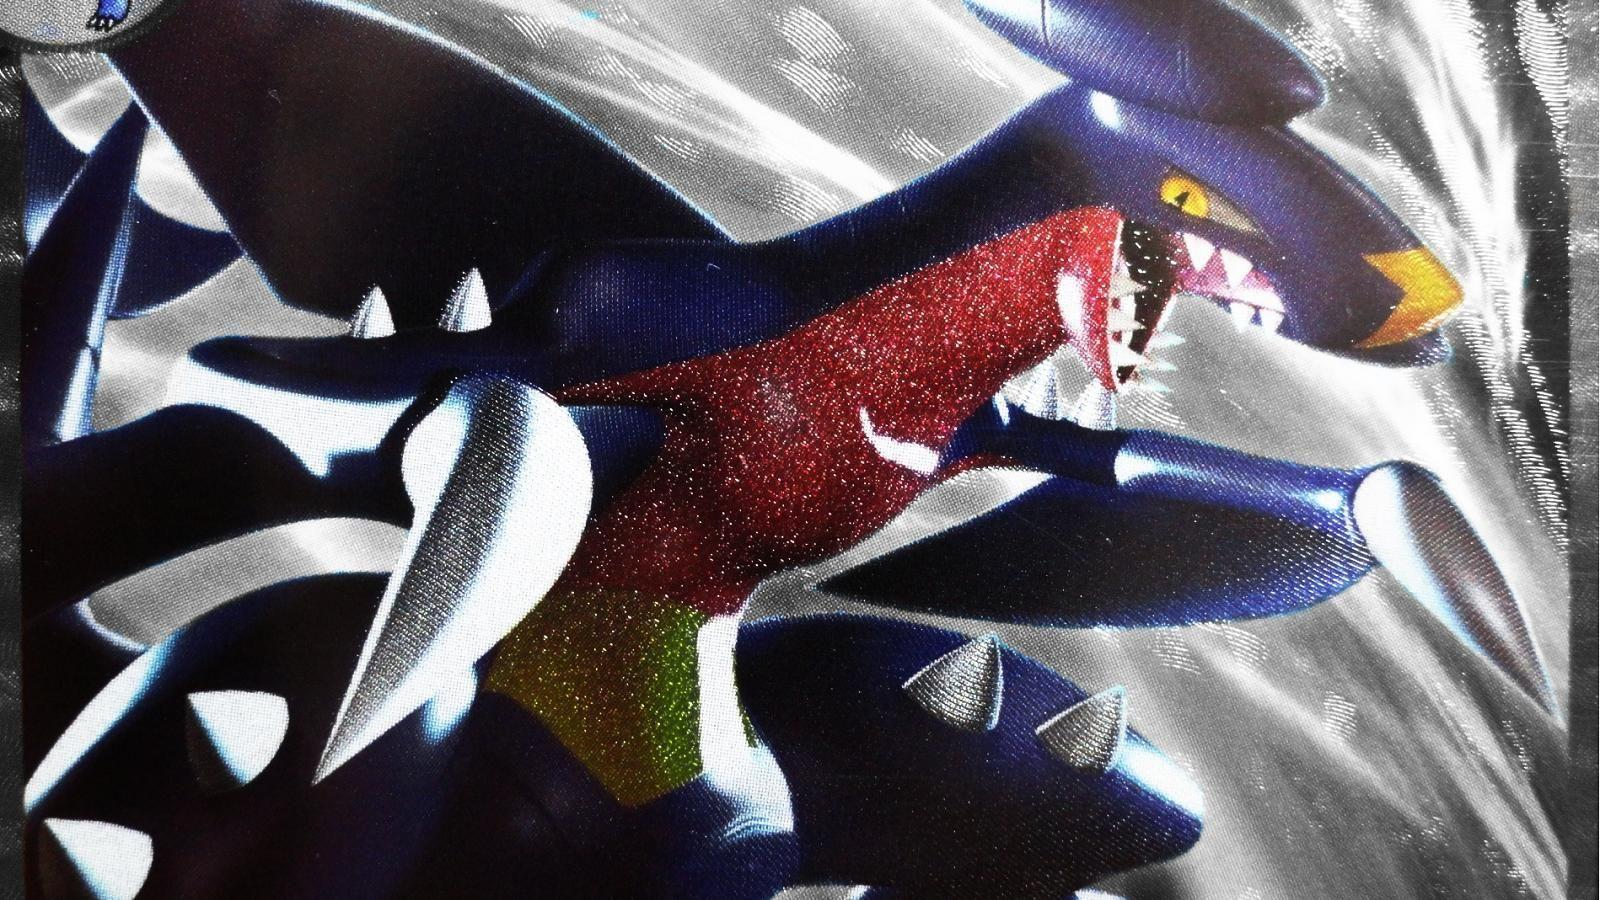 Garchomp Wallpapers Group 1280×922 Garchomp Wallpapers